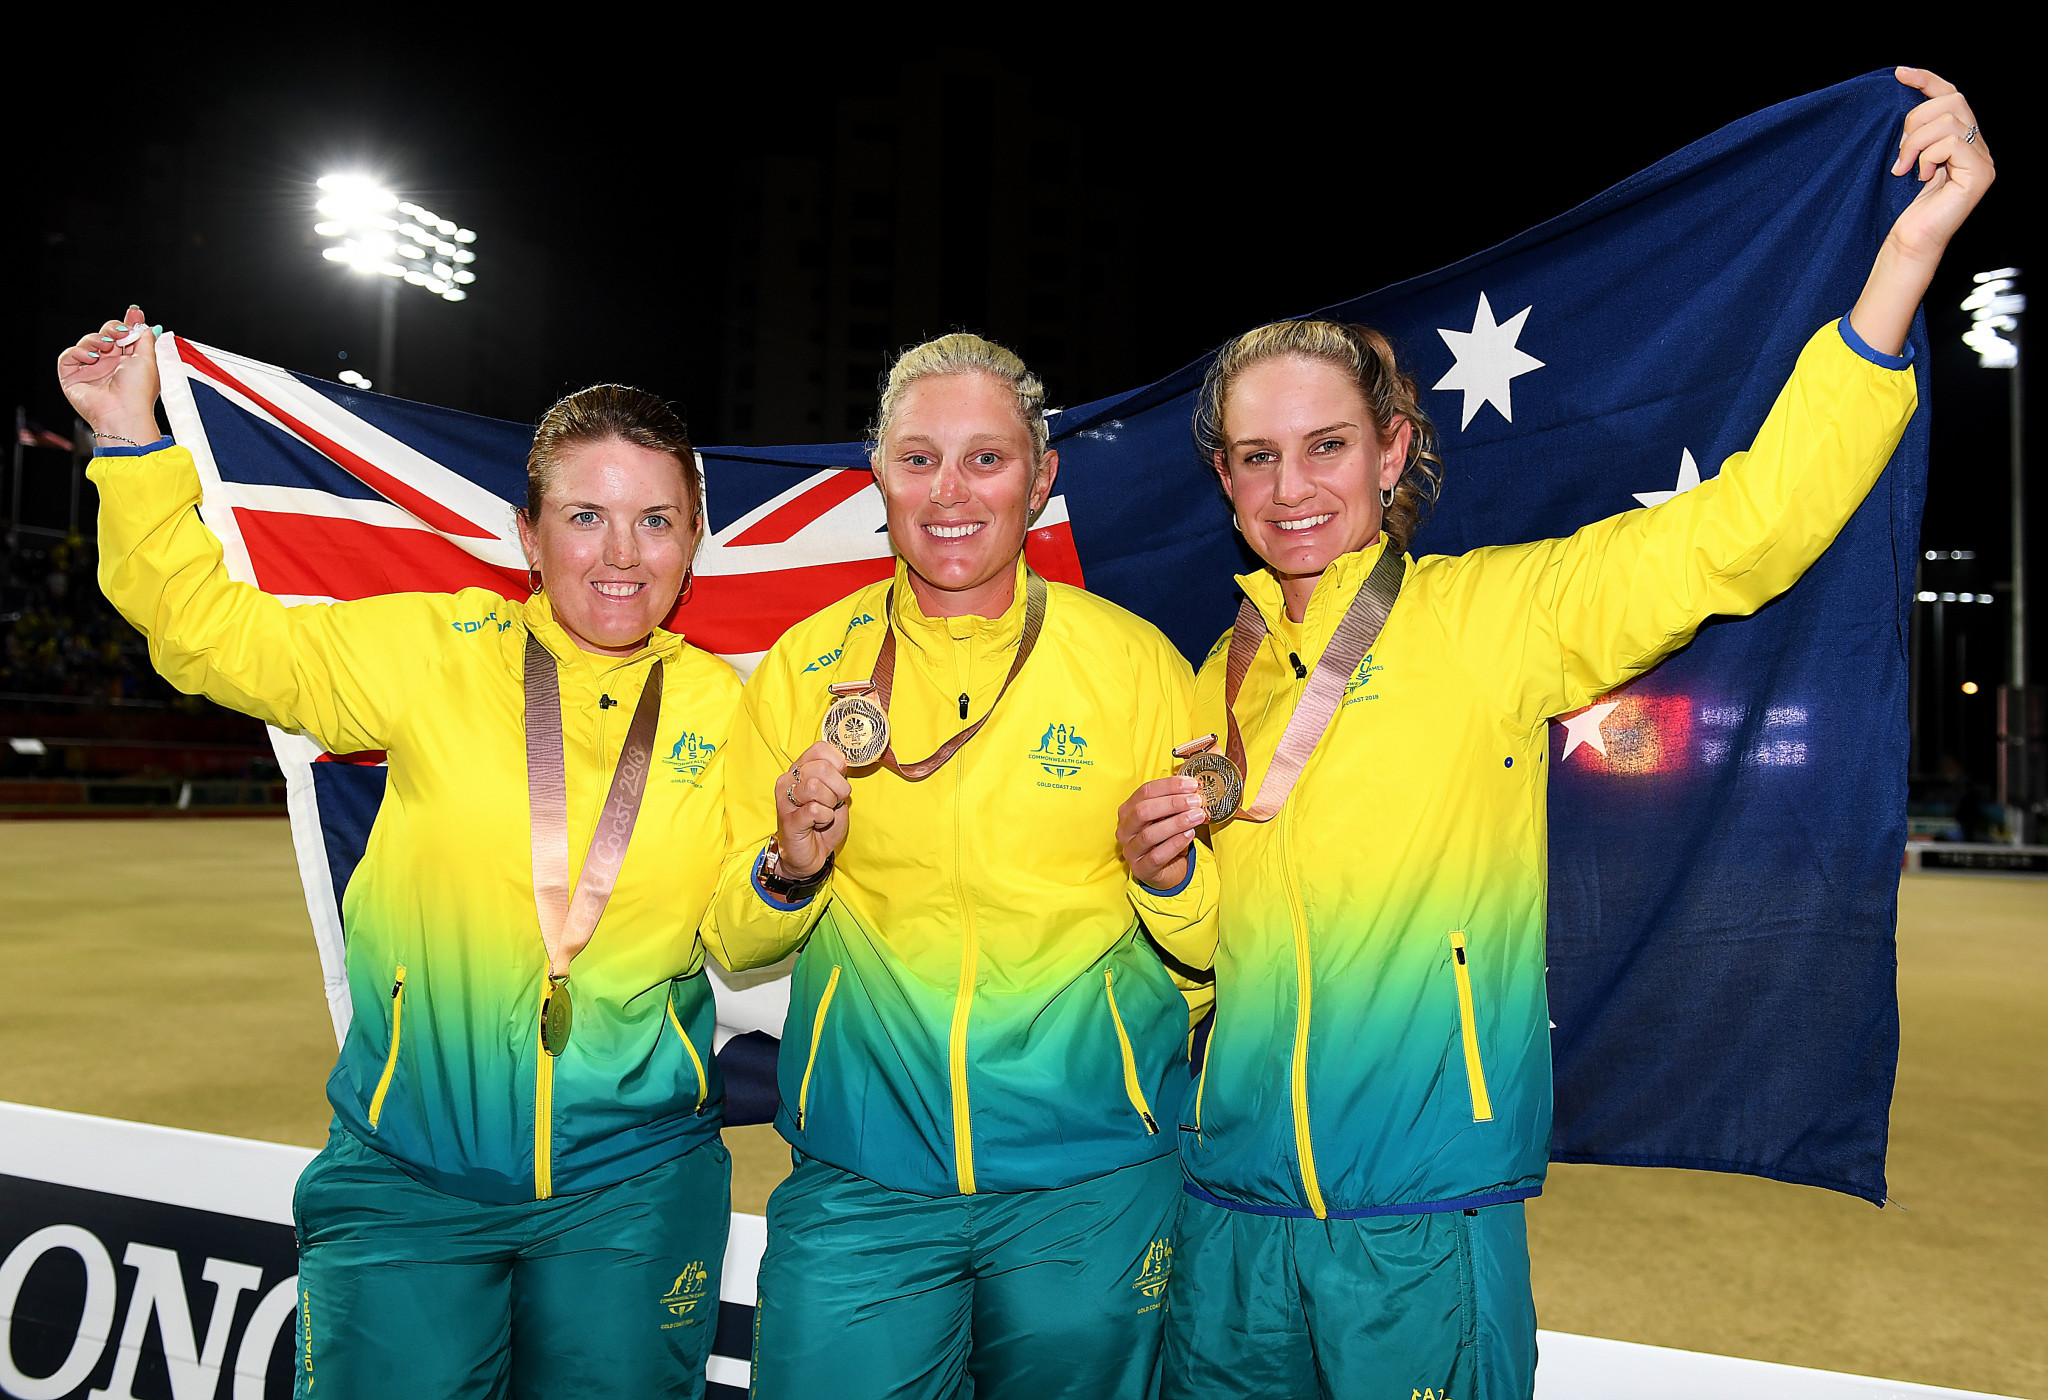 Australian triples team impress again as section play ends at Asia Pacific Bowls Championships